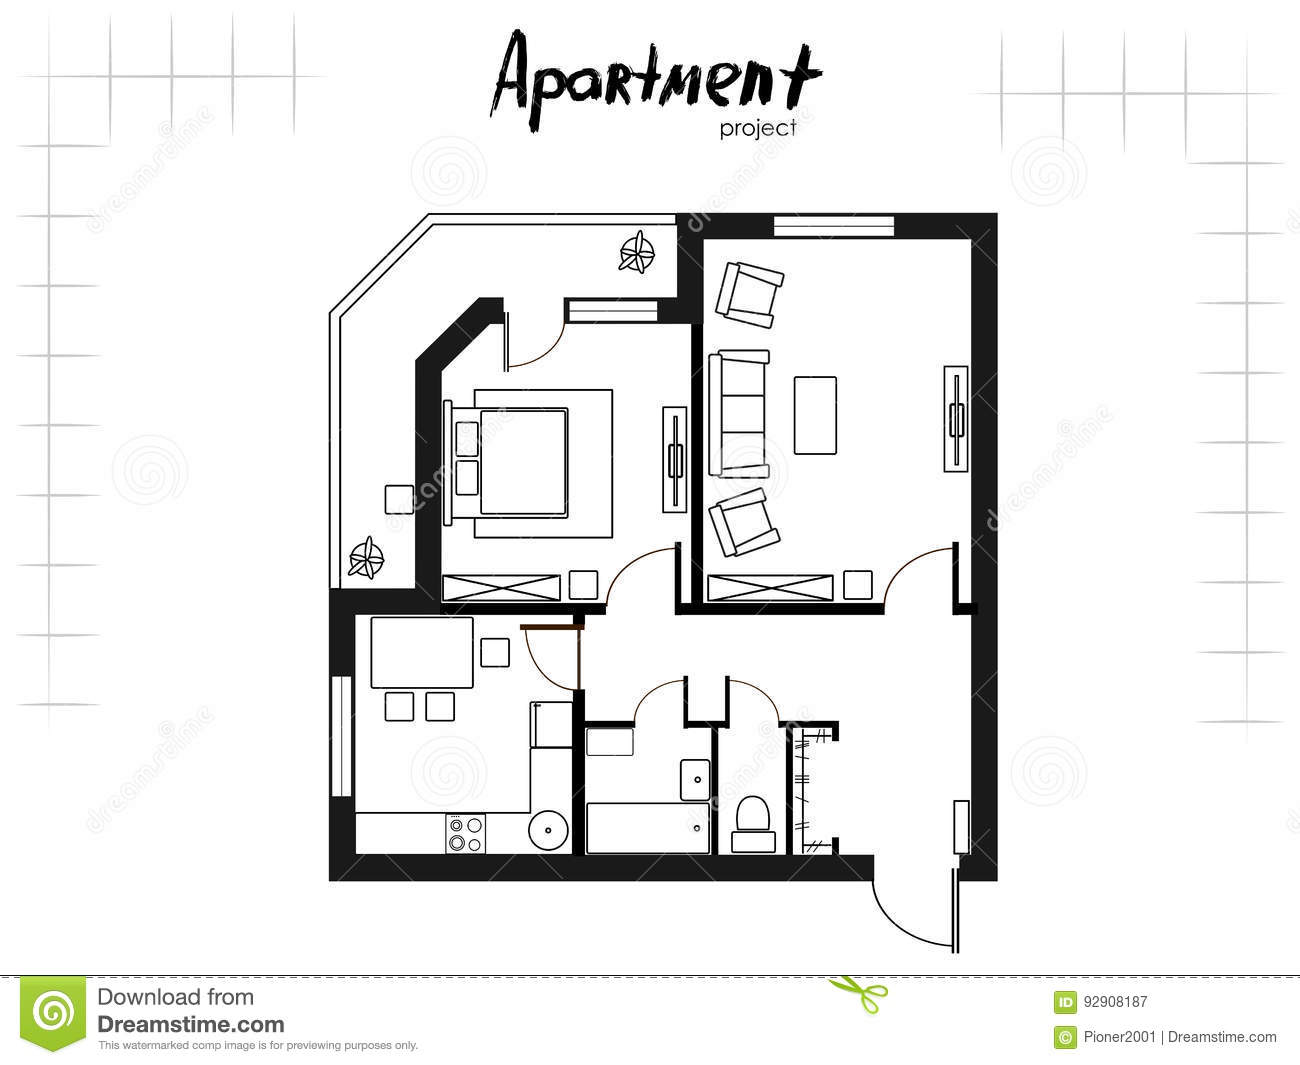 One bedroom apartment stock vector. Illustration of ...